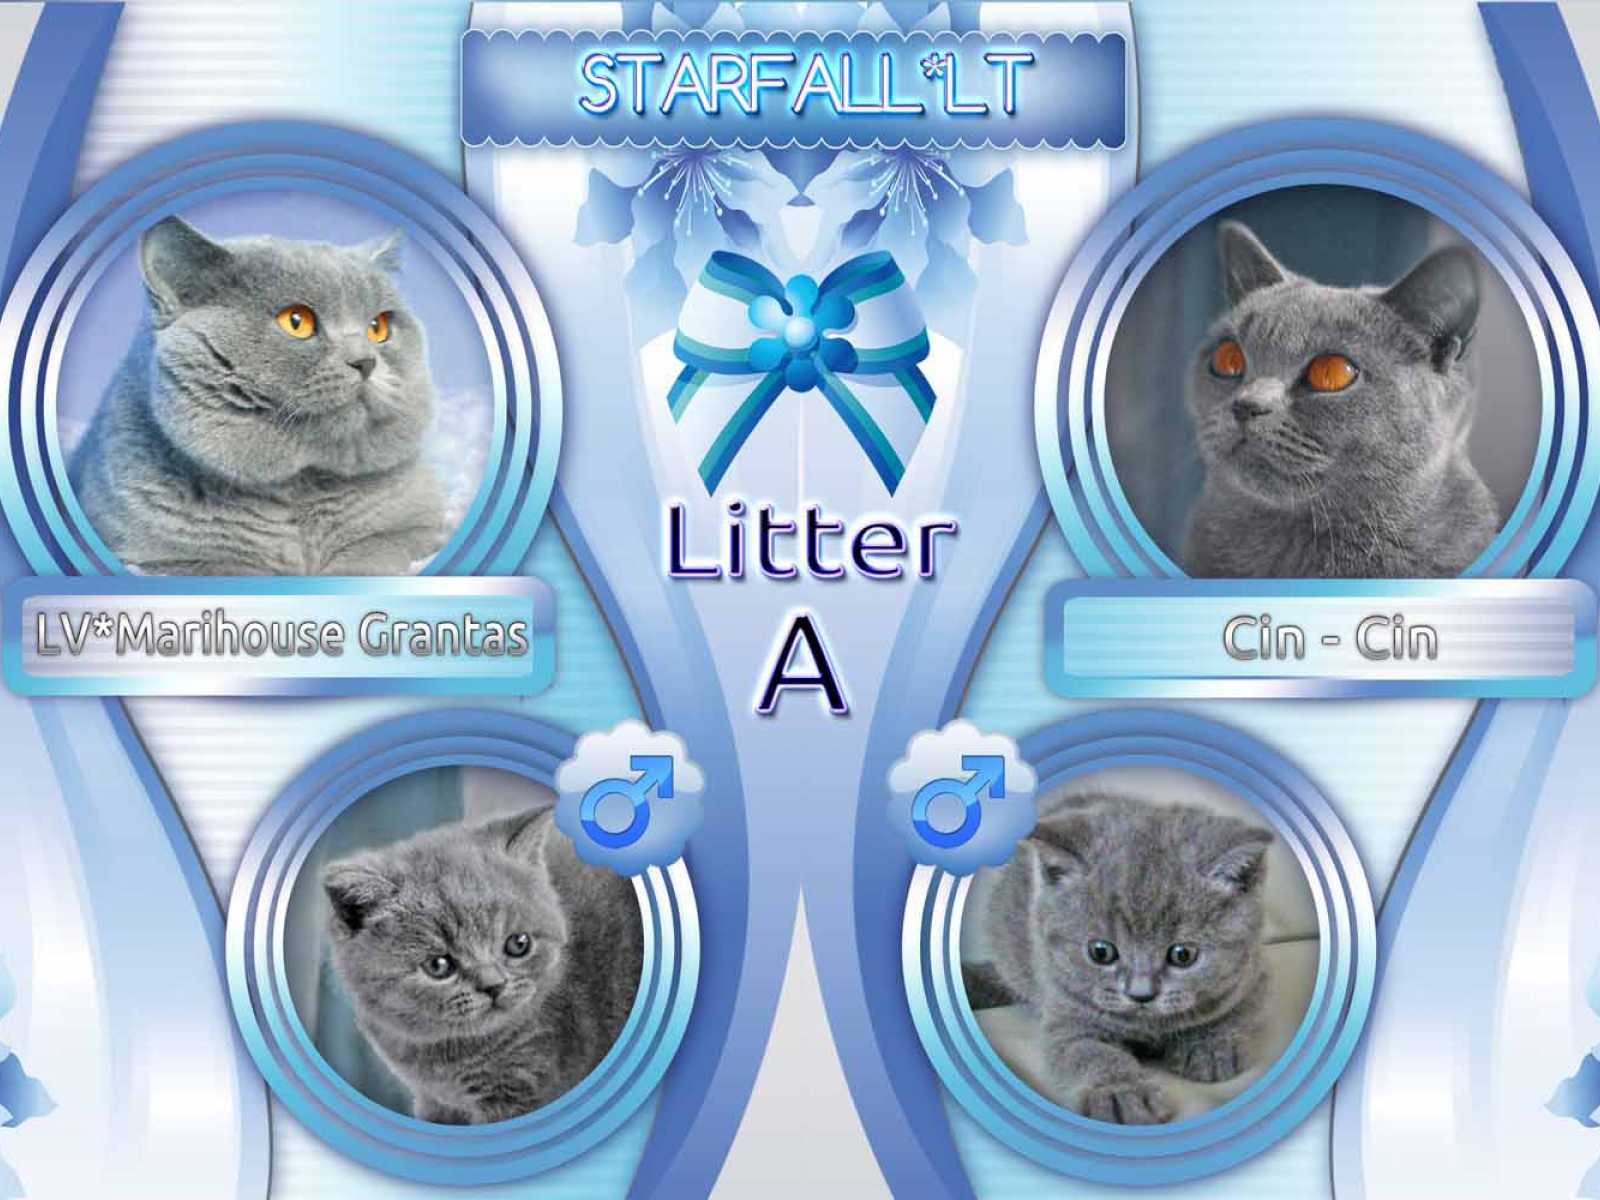 Litter A has been born